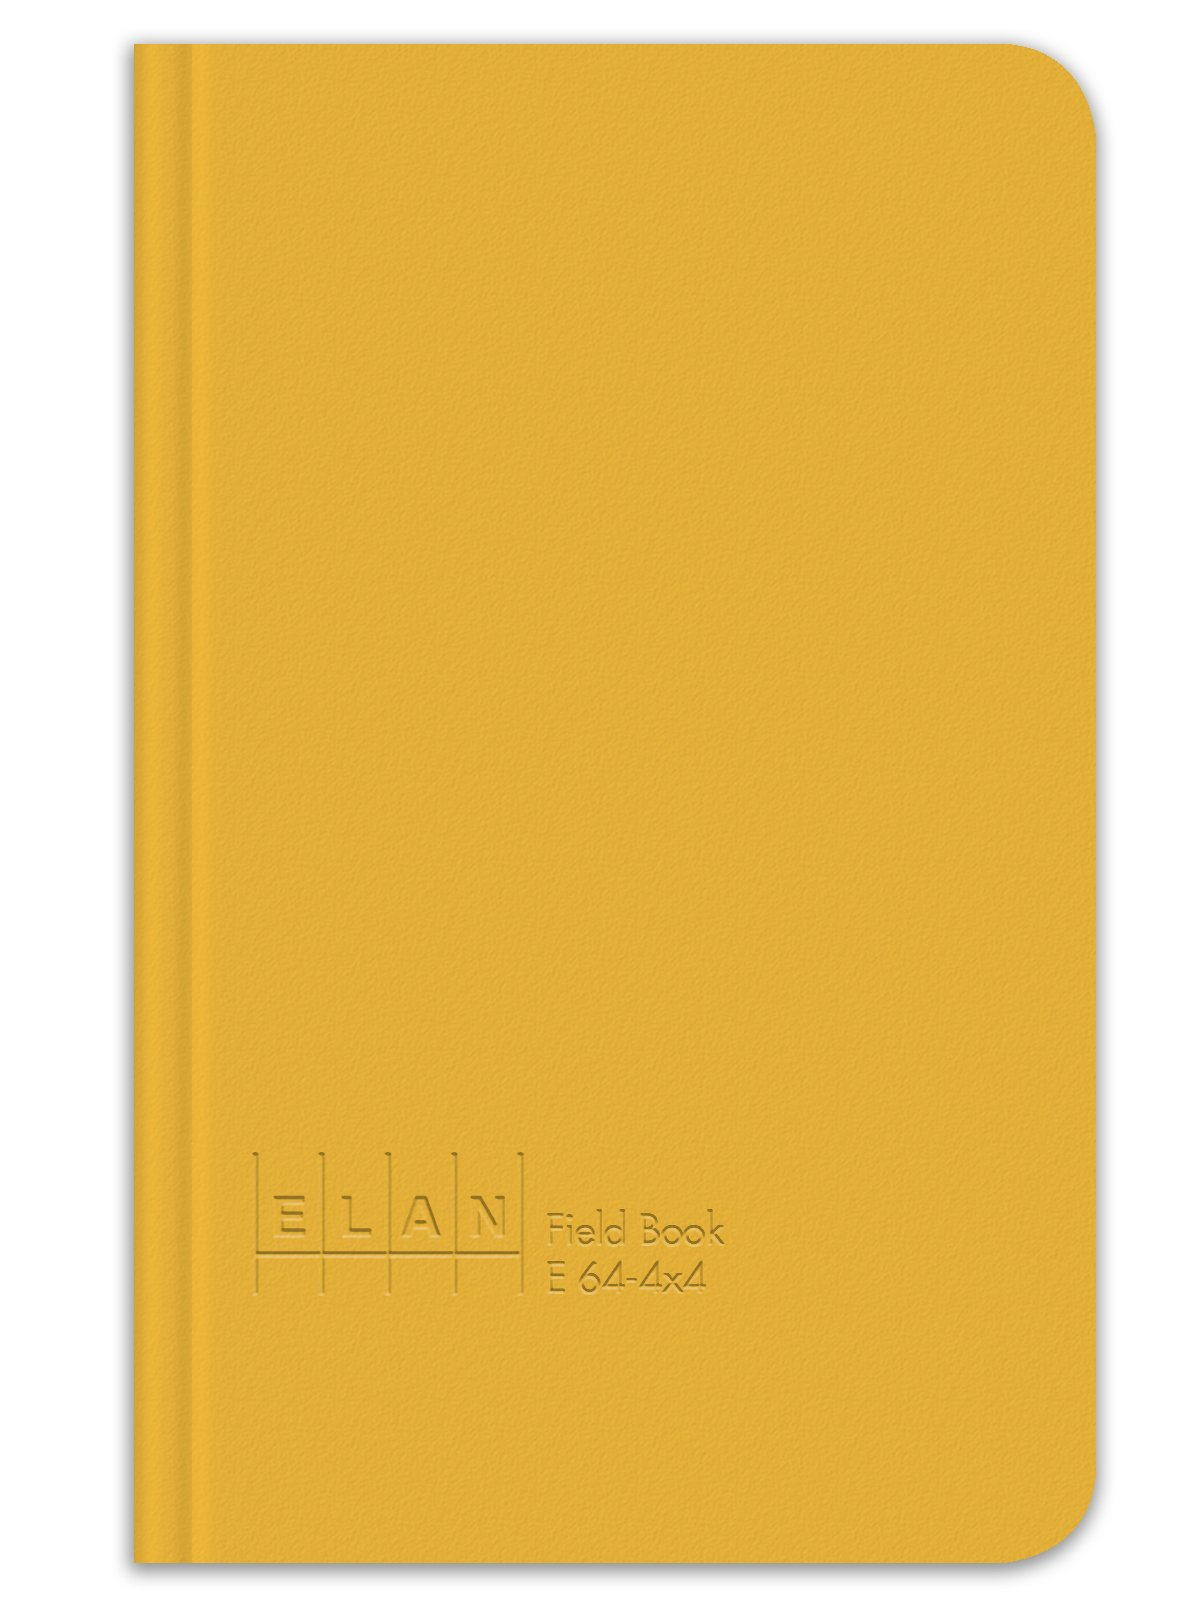 Elan Publishing Company E64-4x4 Field Surveying Book 4 ⅝ x 7 ¼, Yellow Cover (Pack of 24)